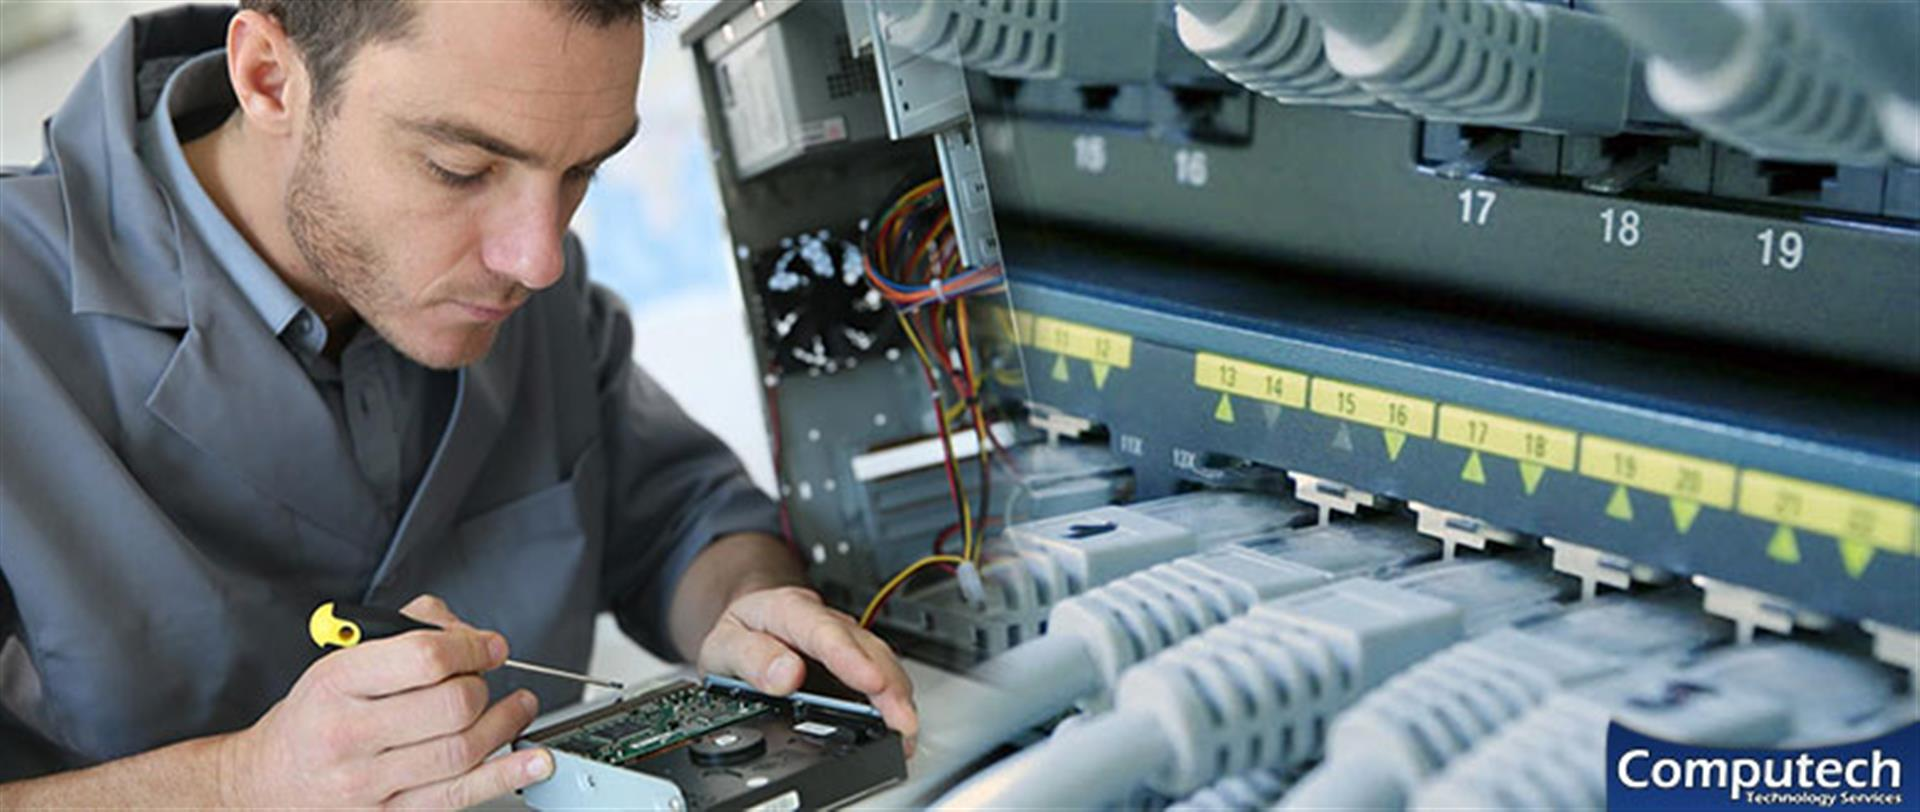 Thomasville Alabama Onsite Computer & Printer Repair, Network, Voice & Data Low Voltage Cabling Services